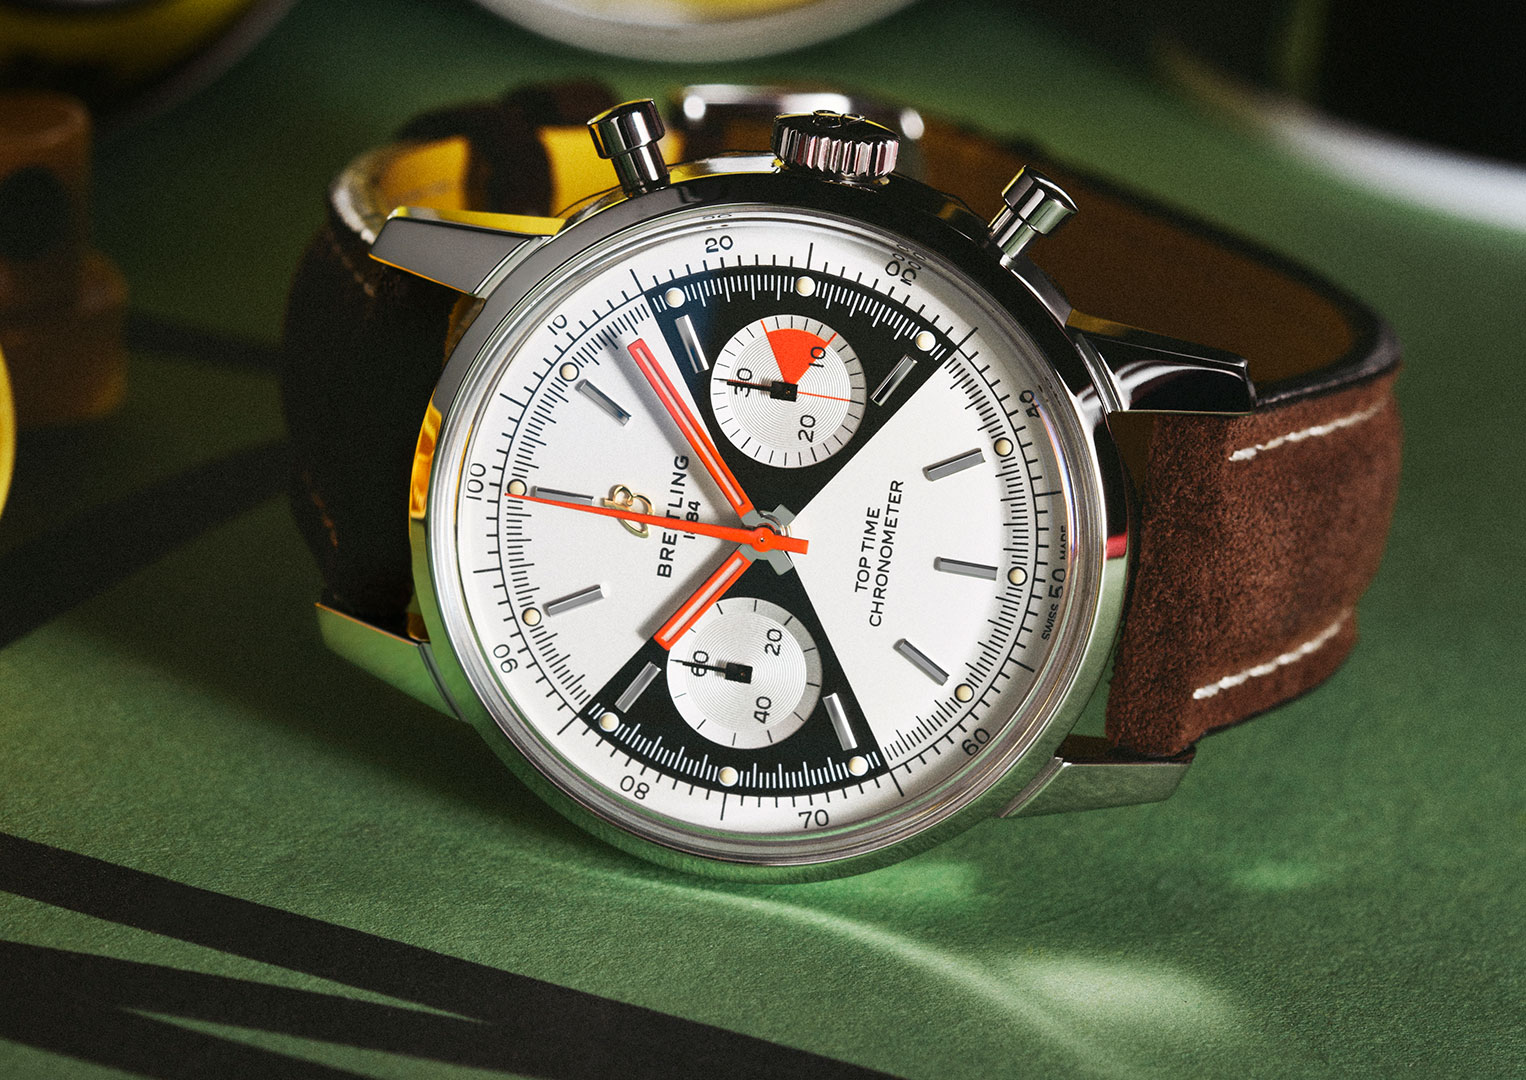 Breitling's 2020 limited edition re-issue of the Top Timer with 'zorro' dial.